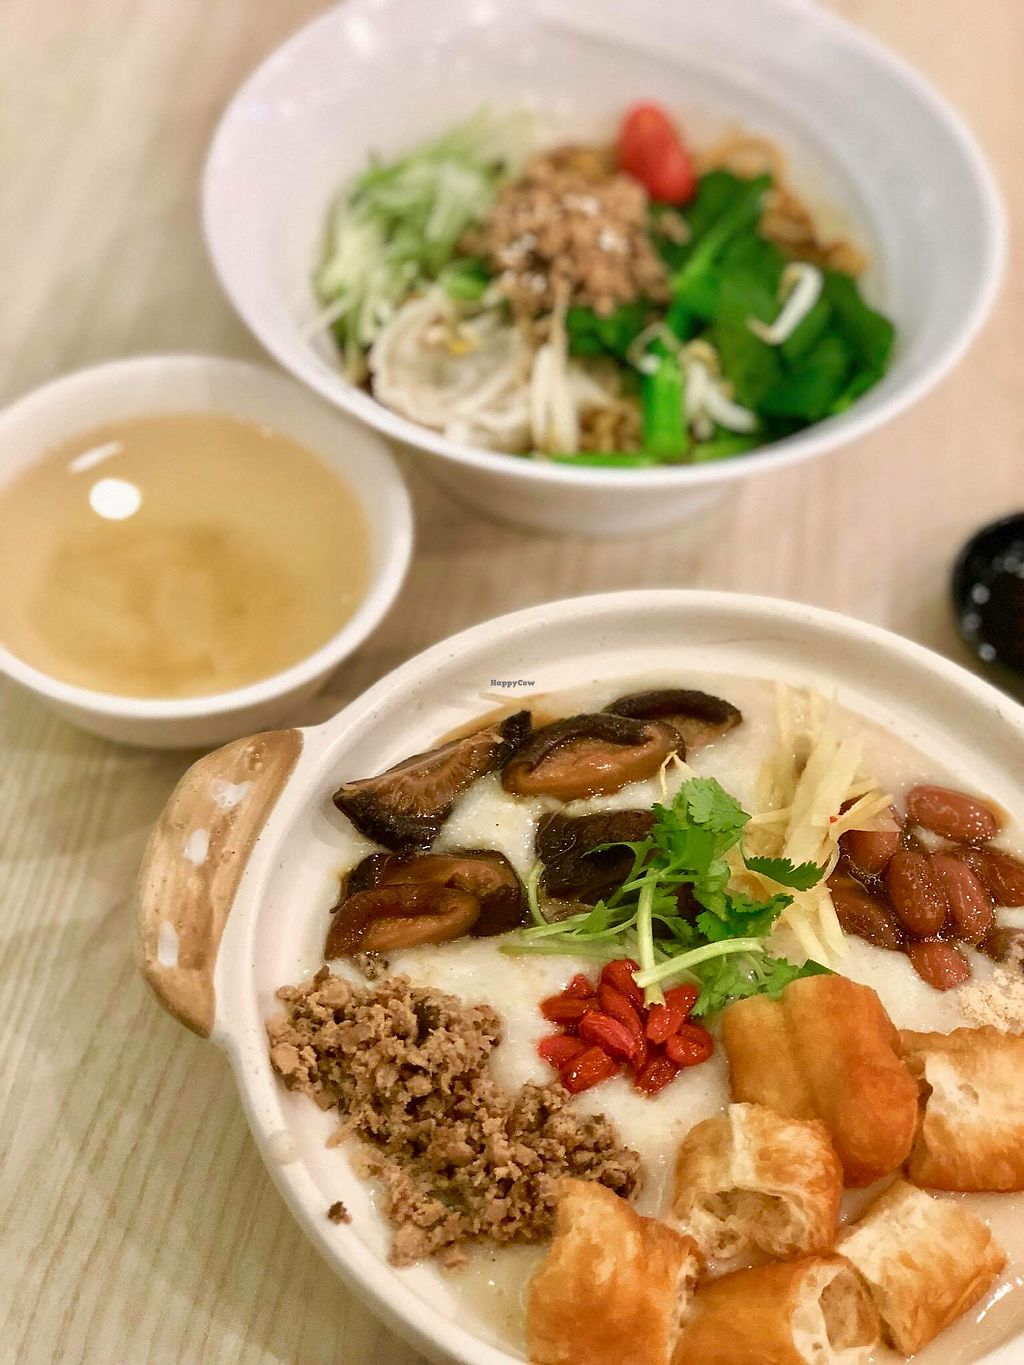 """Photo of Truly Vegetarian  by <a href=""""/members/profile/CherylQuincy"""">CherylQuincy</a> <br/>Signature Claypot Dang Gui Soya Porridge <br/> January 17, 2018  - <a href='/contact/abuse/image/94769/347399'>Report</a>"""